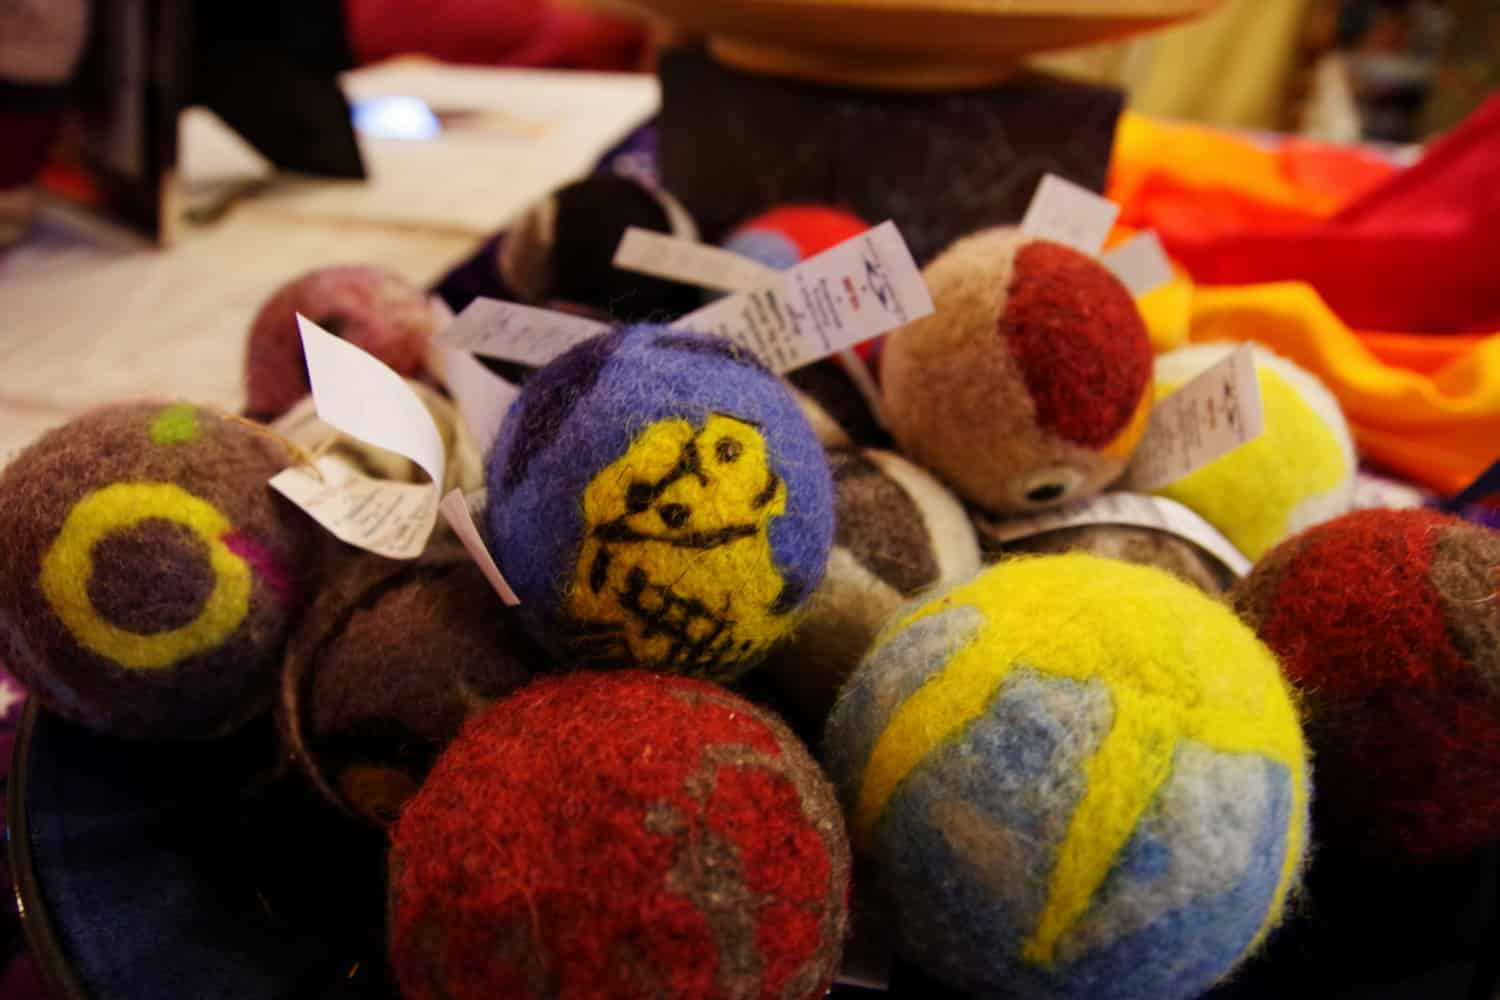 A colorful pile of felted balls with designs on them.